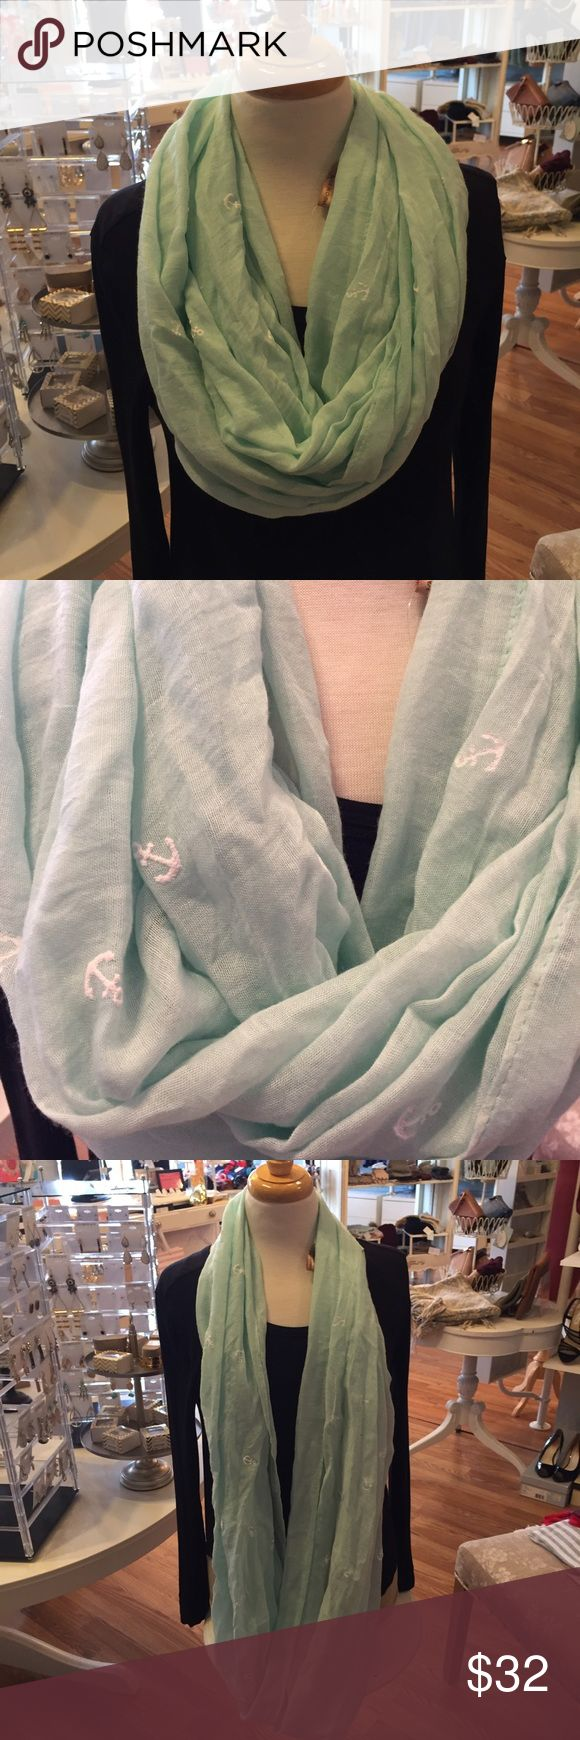 ❄️NEW SALE❄️Lightweight Anchor Infinity Scarf Cute lightweight infinity scarf featuring a mint green color with white anchor detailing. Adds a cute touch to any outfit. 70% Poly 30% Viscose Accessories Scarves & Wraps